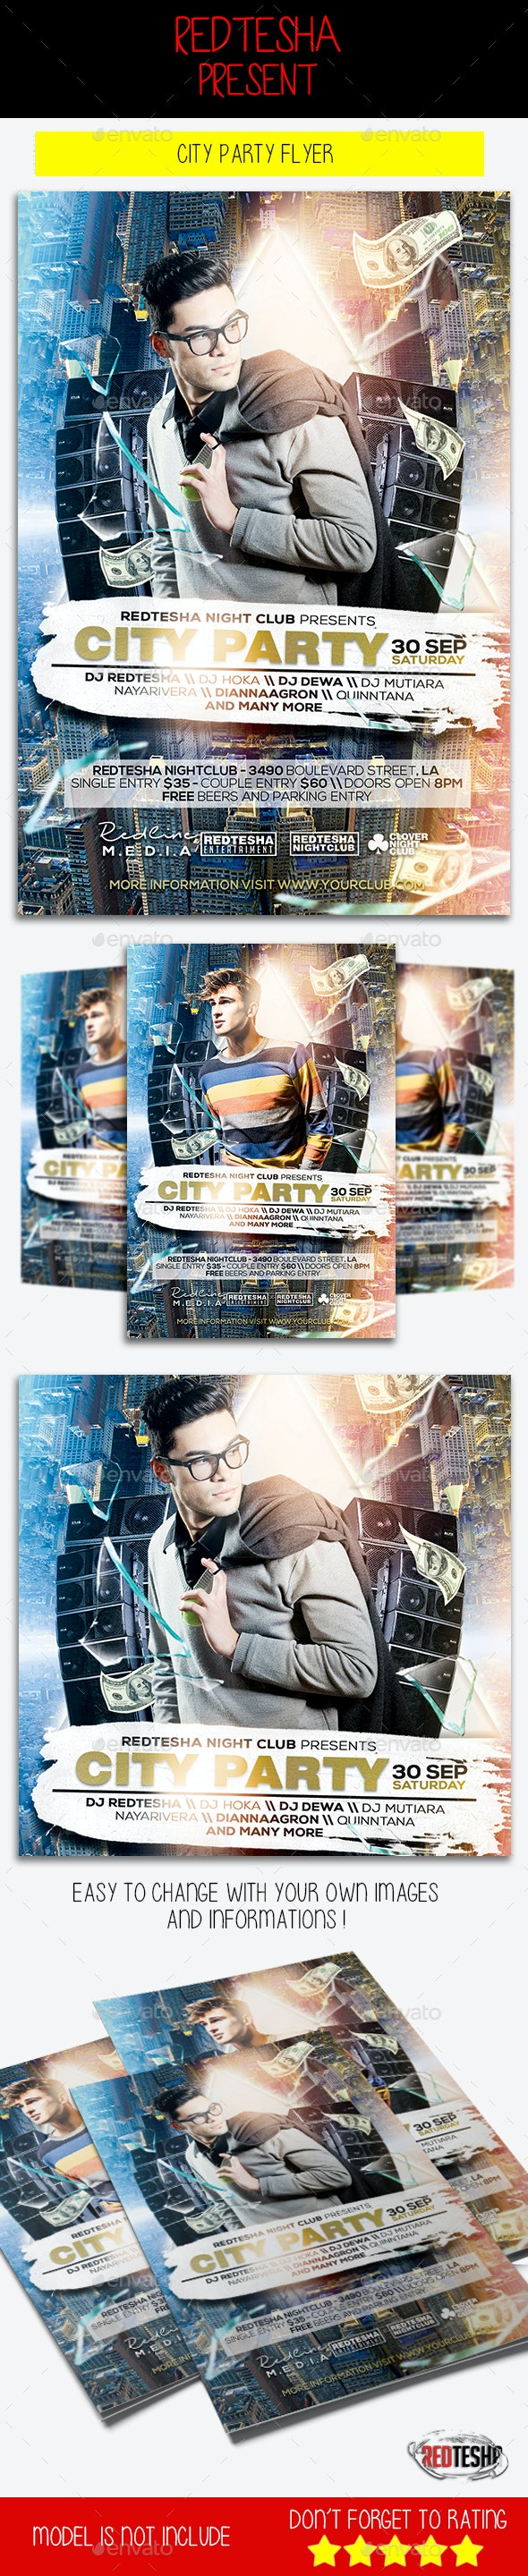 City Party Flyer - Clubs & Parties Events